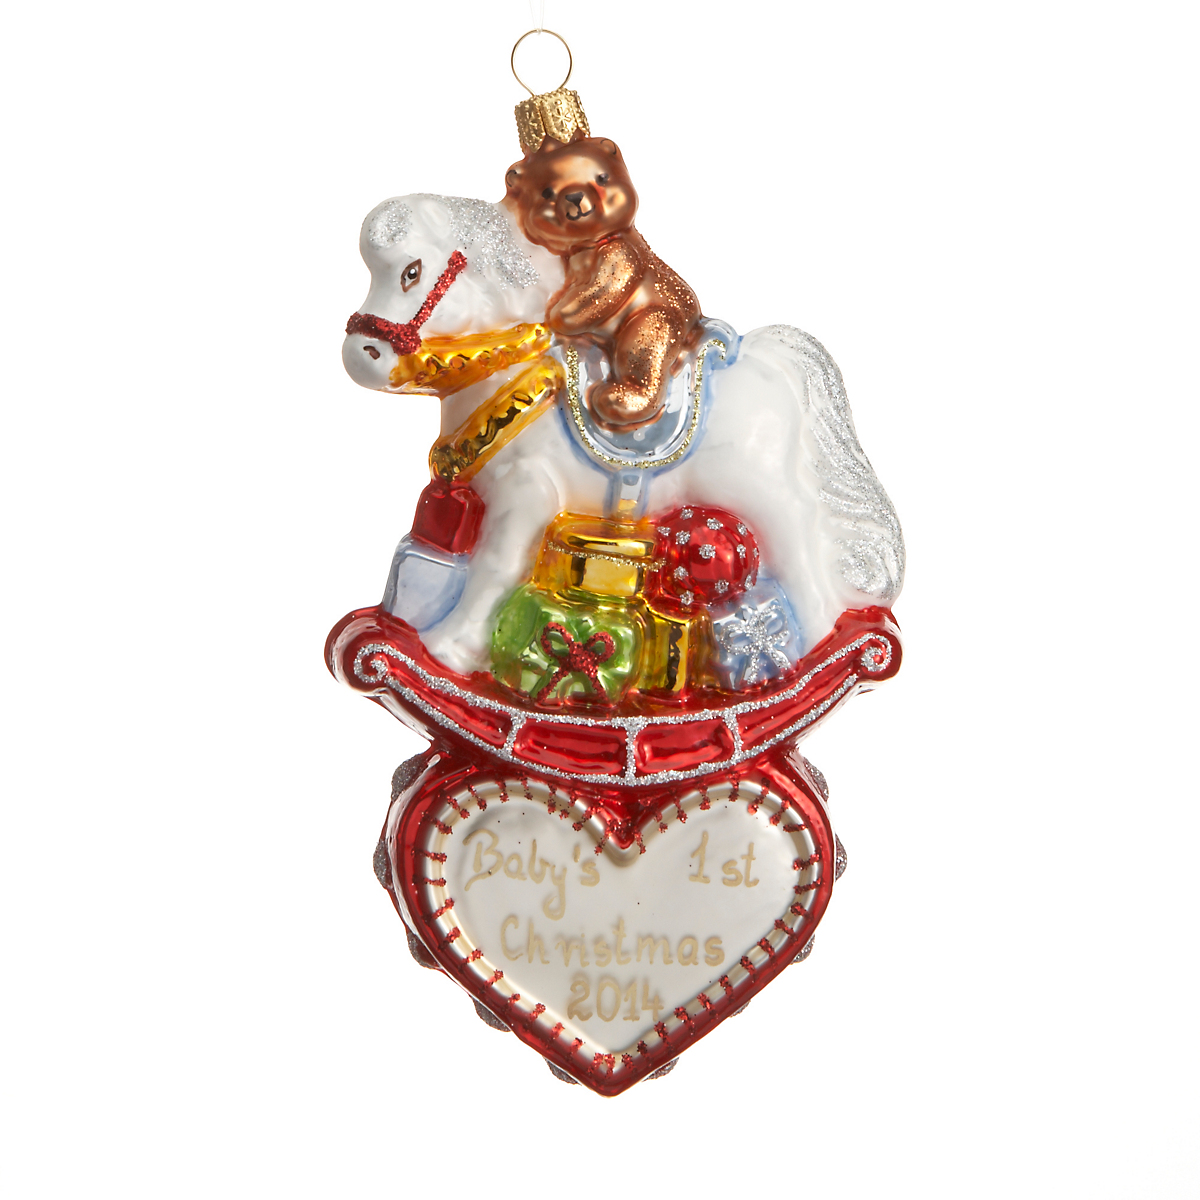 Baby s st christmas rocking horse ornament gump